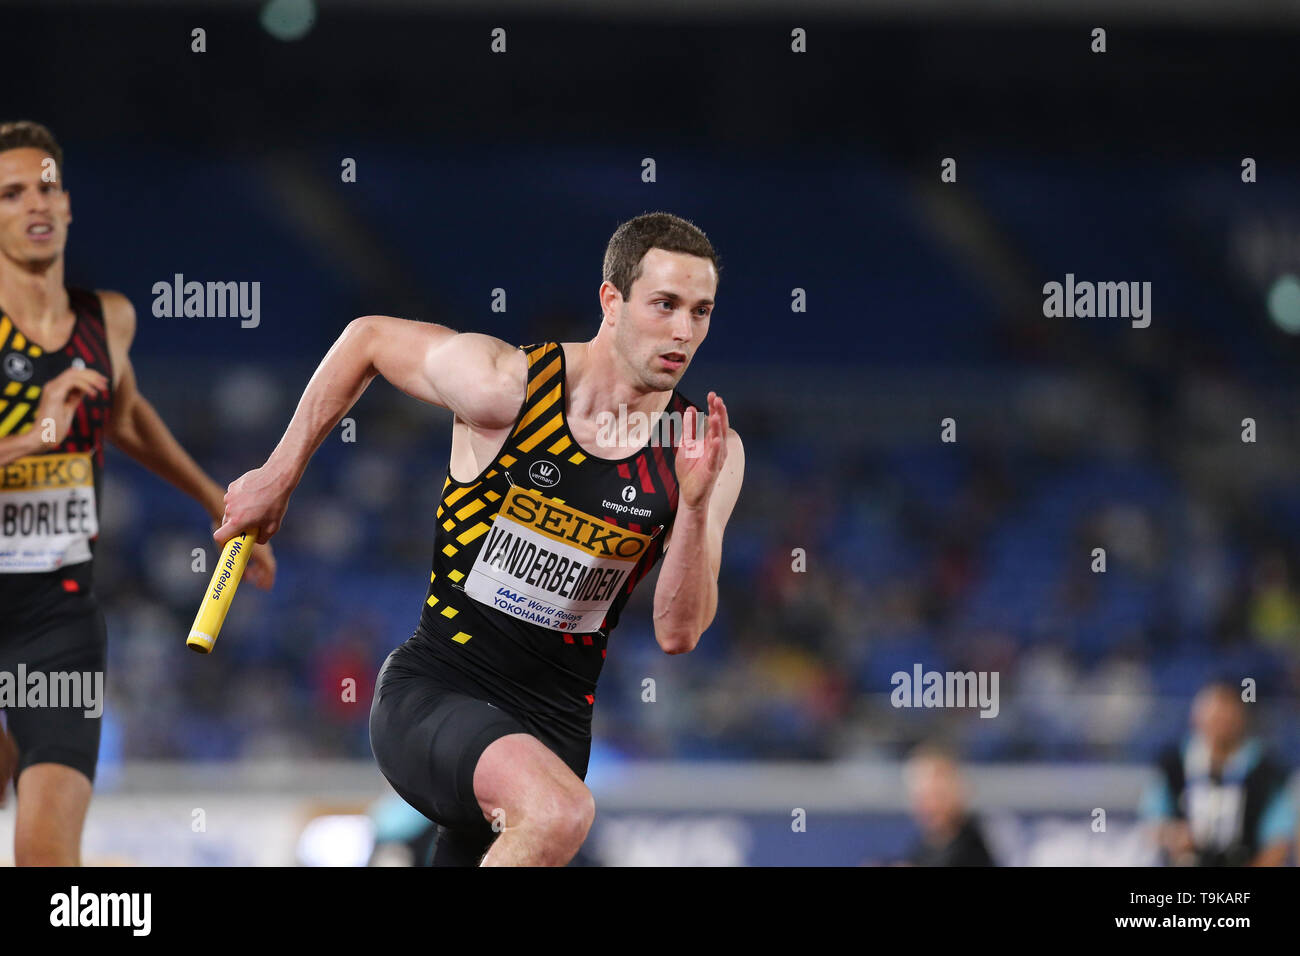 YOKOHAMA, JAPAN - MAY 10: Robin Vanderbemden of Belgium during Day 1 of the 2019 IAAF World Relay Championships at the Nissan Stadium on Saturday May 11, 2019 in Yokohama, Japan. (Photo by Roger Sedres for the IAAF) - Stock Image